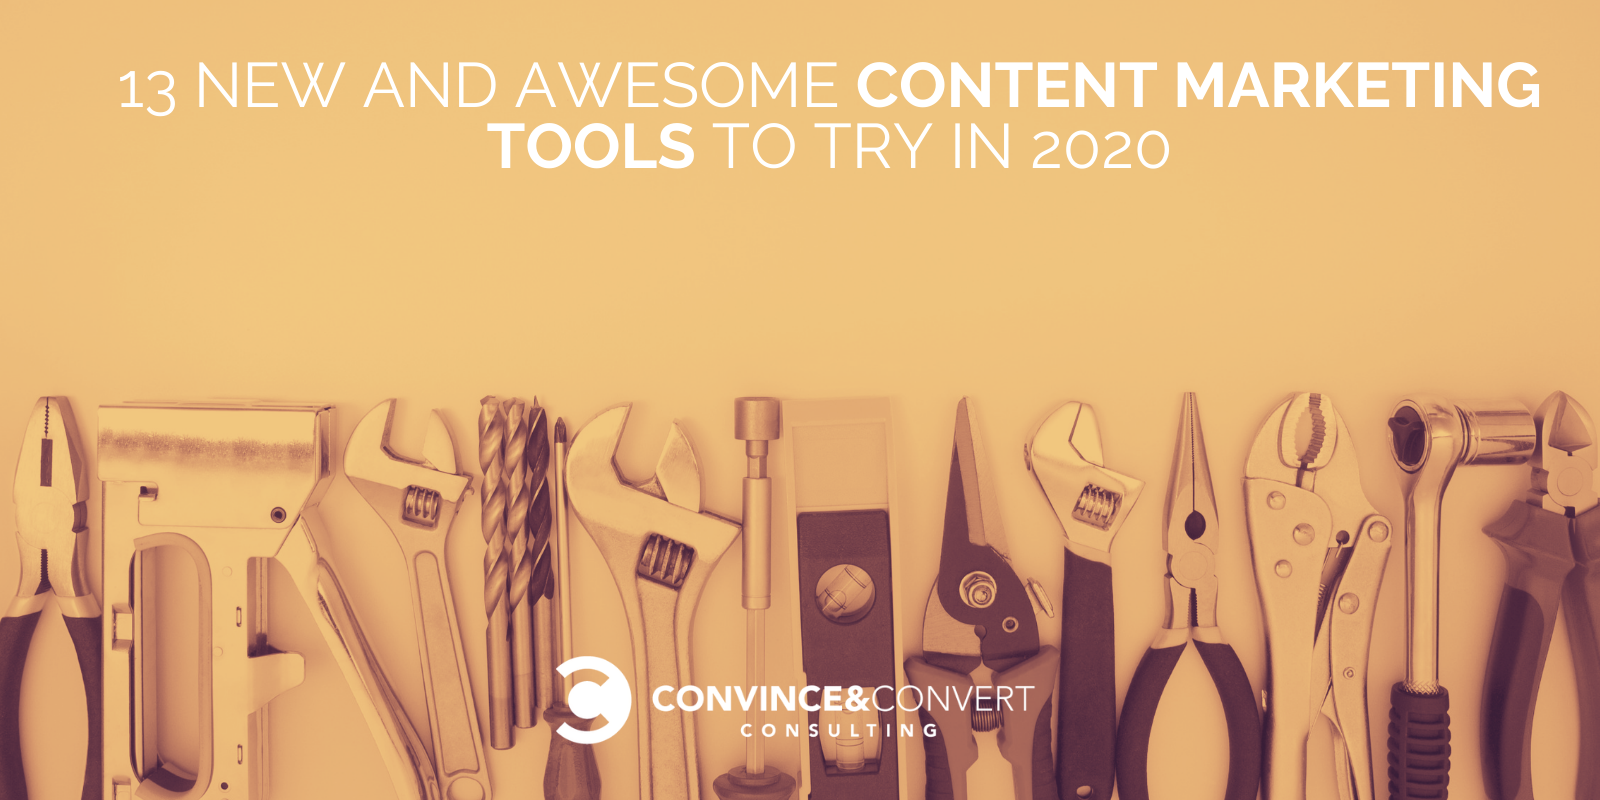 13 New and Awesome Content Marketing Tools to Try in 2020